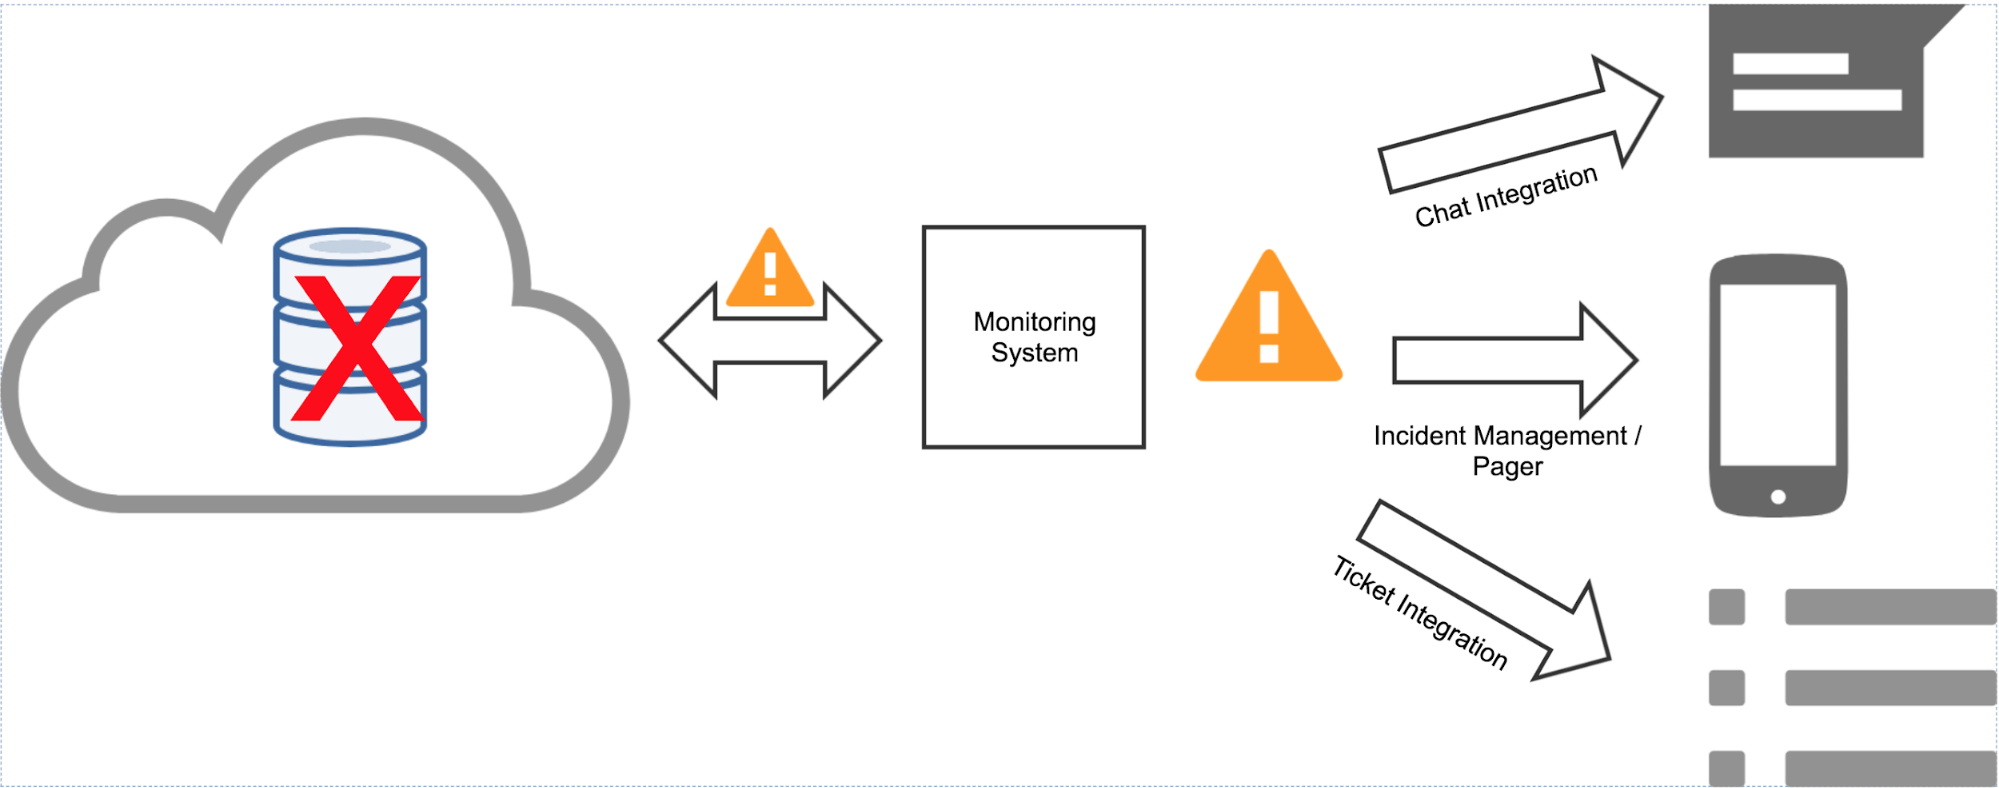 How To Build Monitors You Can Trust And Reduce Alert Fatigue